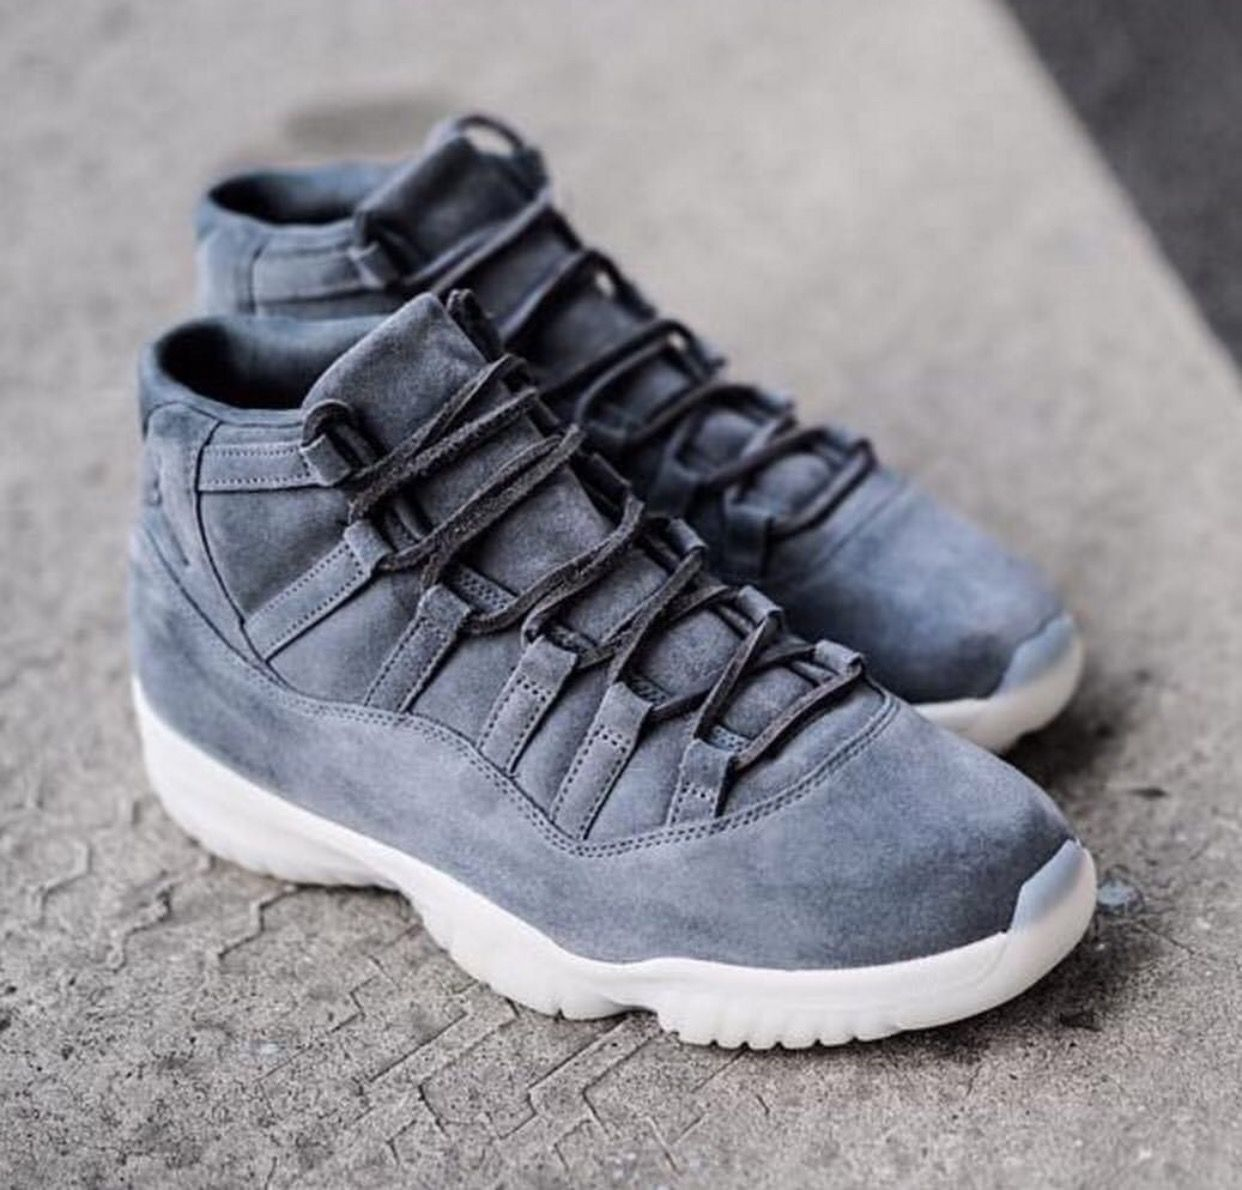 info for 56103 39c20 Grey suede 11s | Walking in these streets | Sneakers nike ...